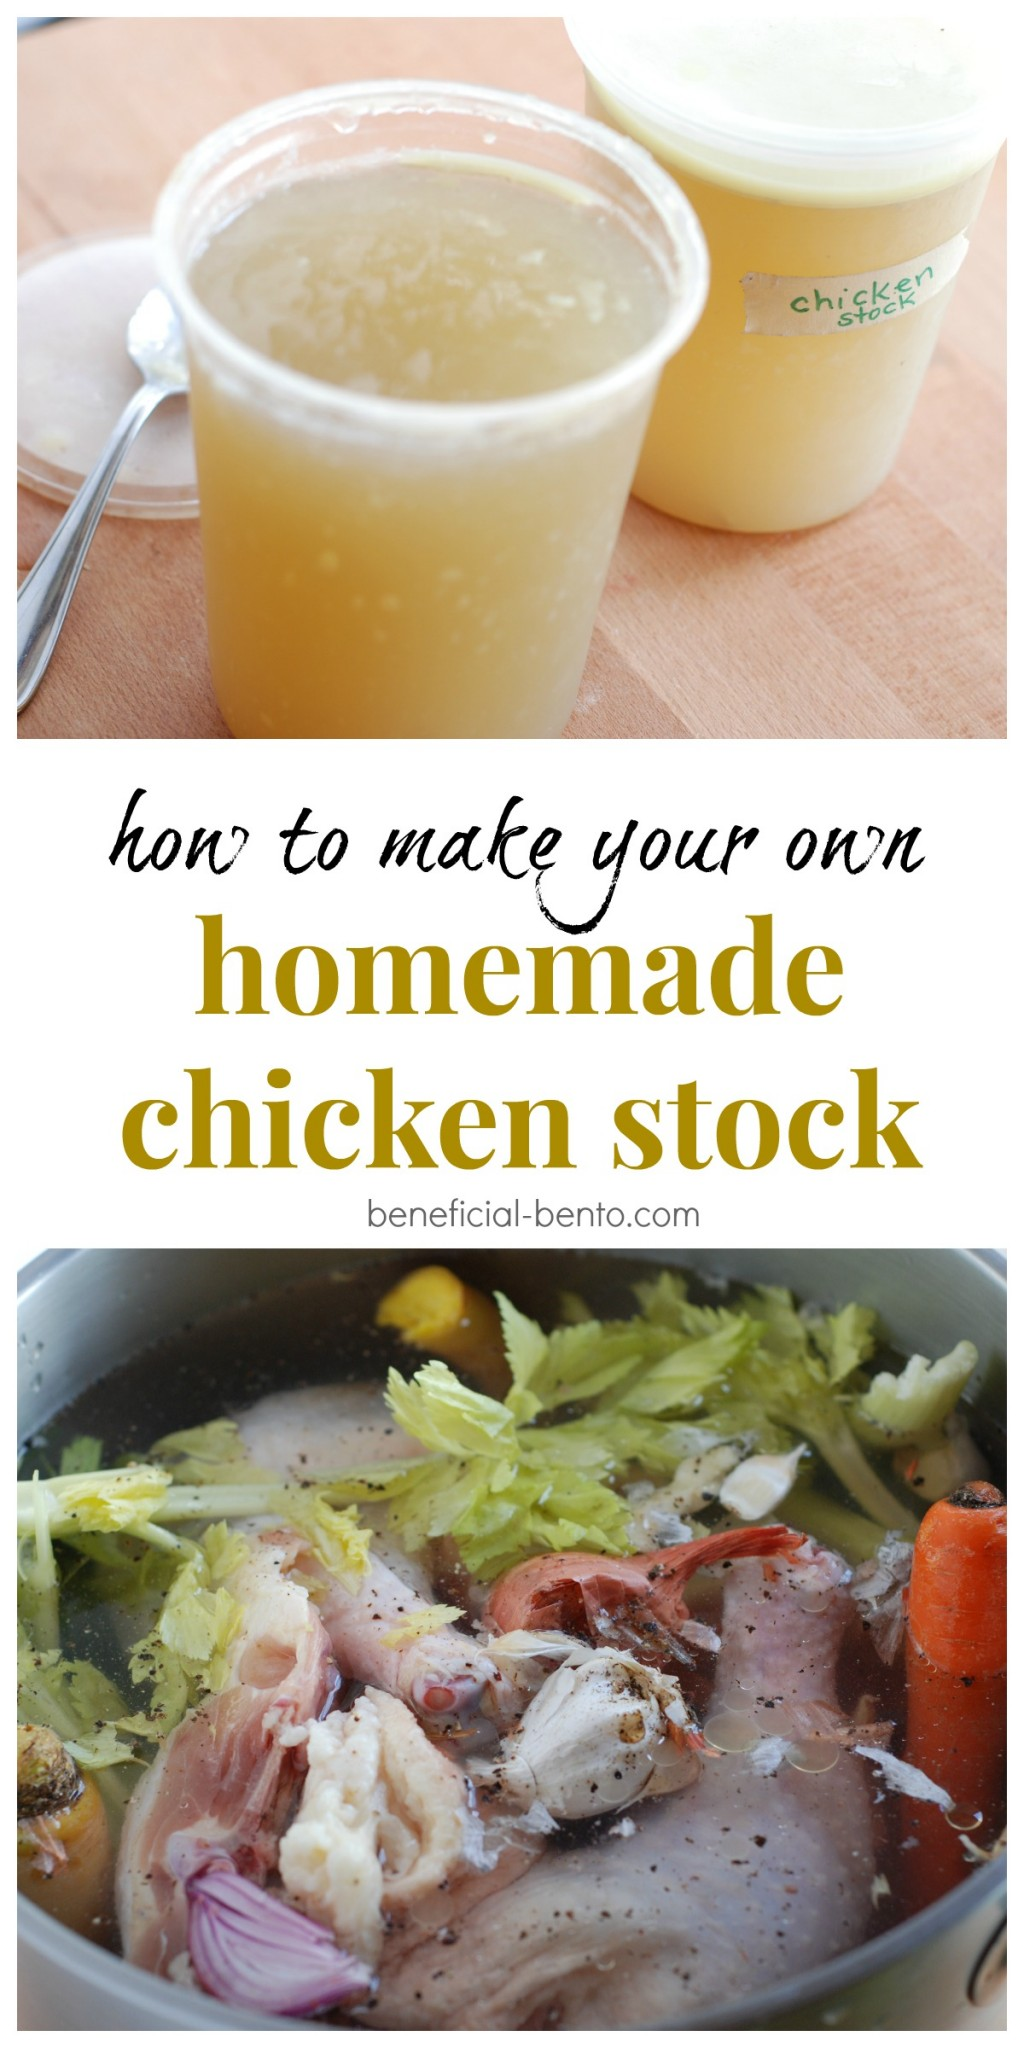 how to make your own chicken stock - its easier than you probably think, and makes soup recipes 100 times better!